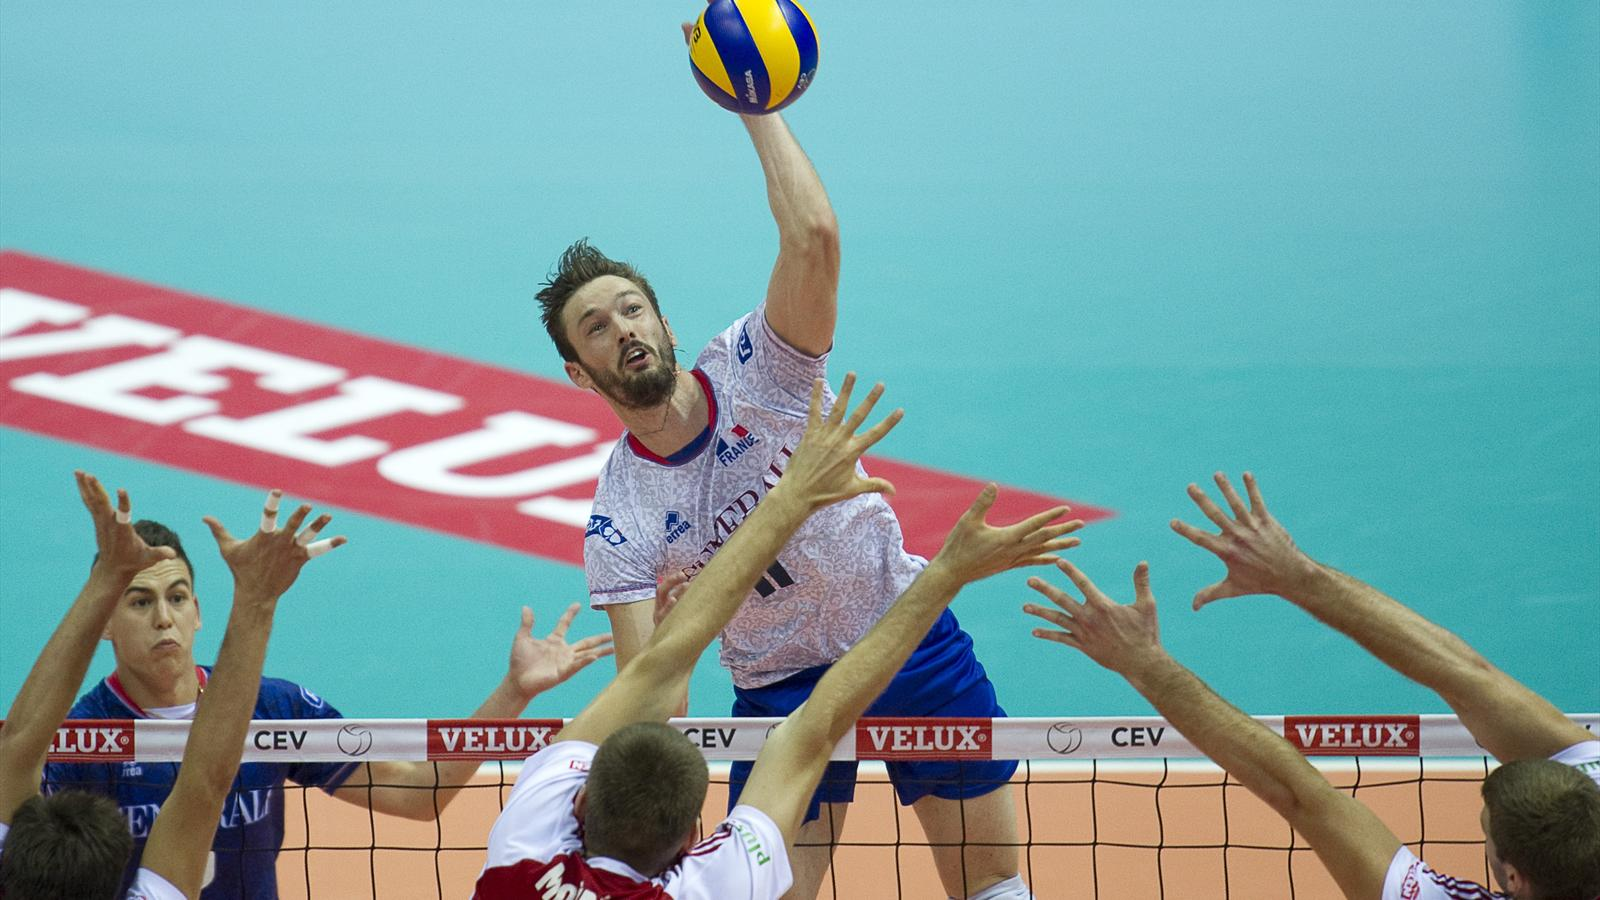 Volleyball France - Pologne en direct streaming live